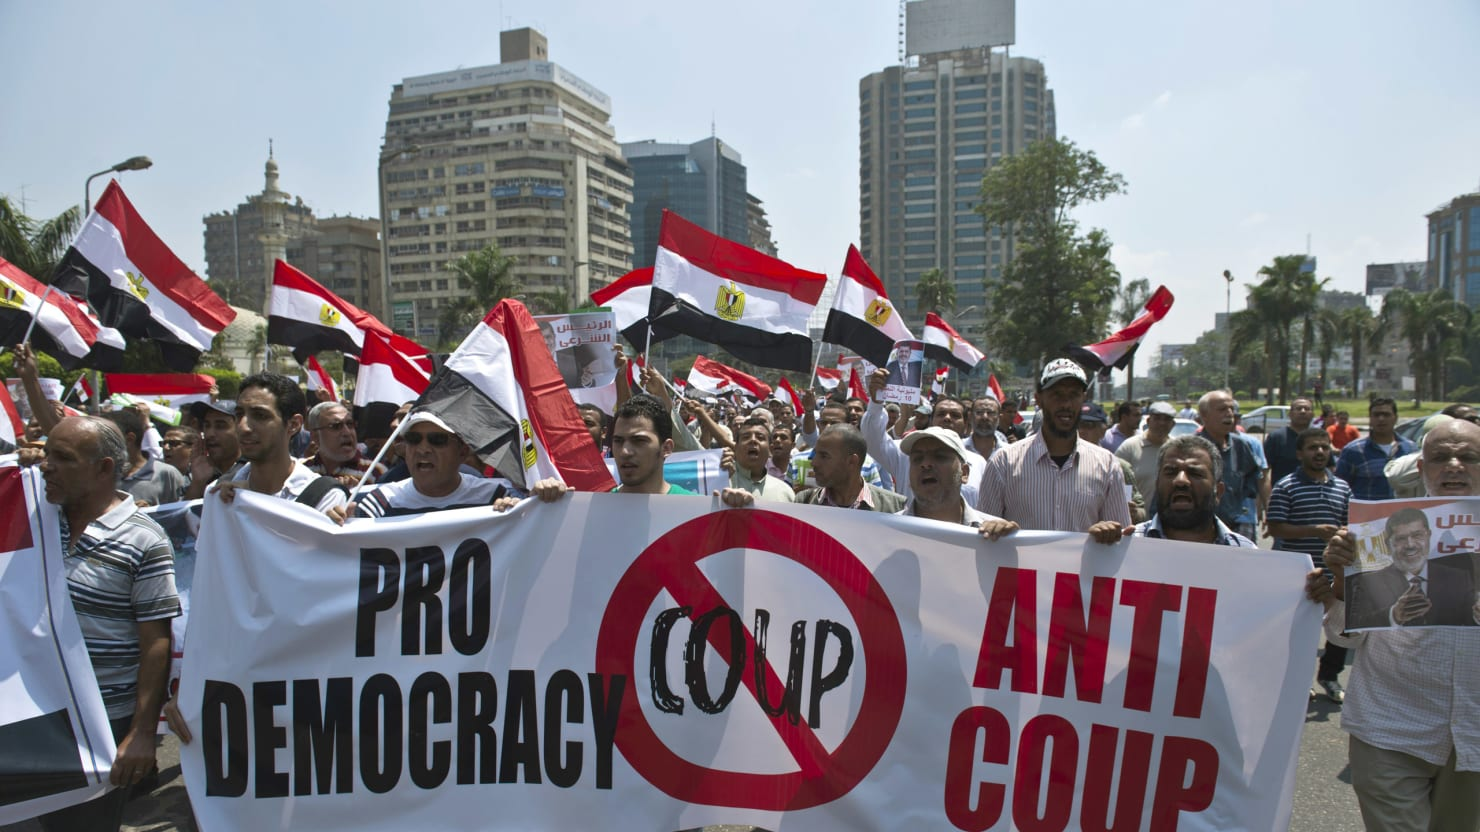 Leslie H. Gelb on the Democracy-Elections Trap in Egypt